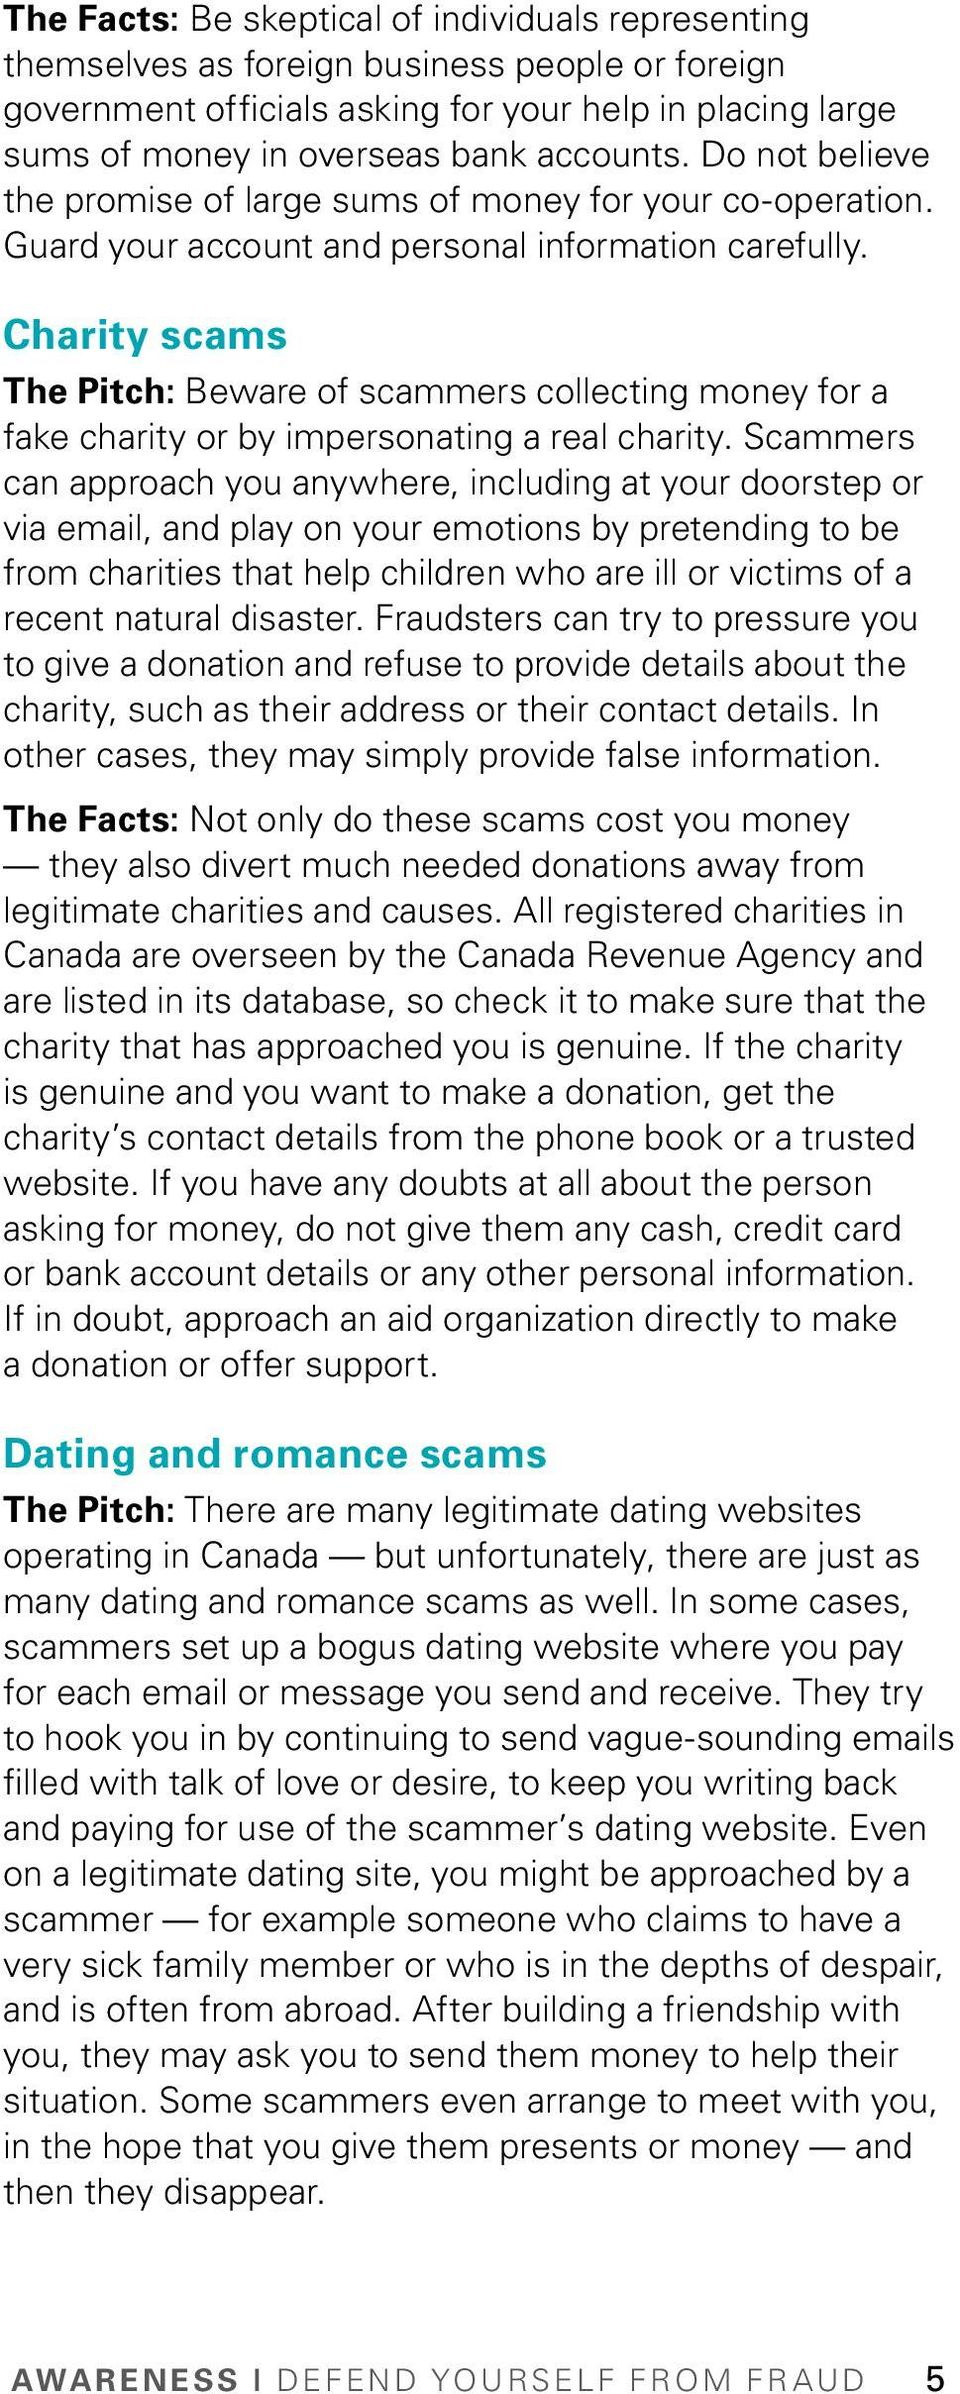 Charity scams The Pitch: Beware of scammers collecting money for a fake charity or by impersonating a real charity.